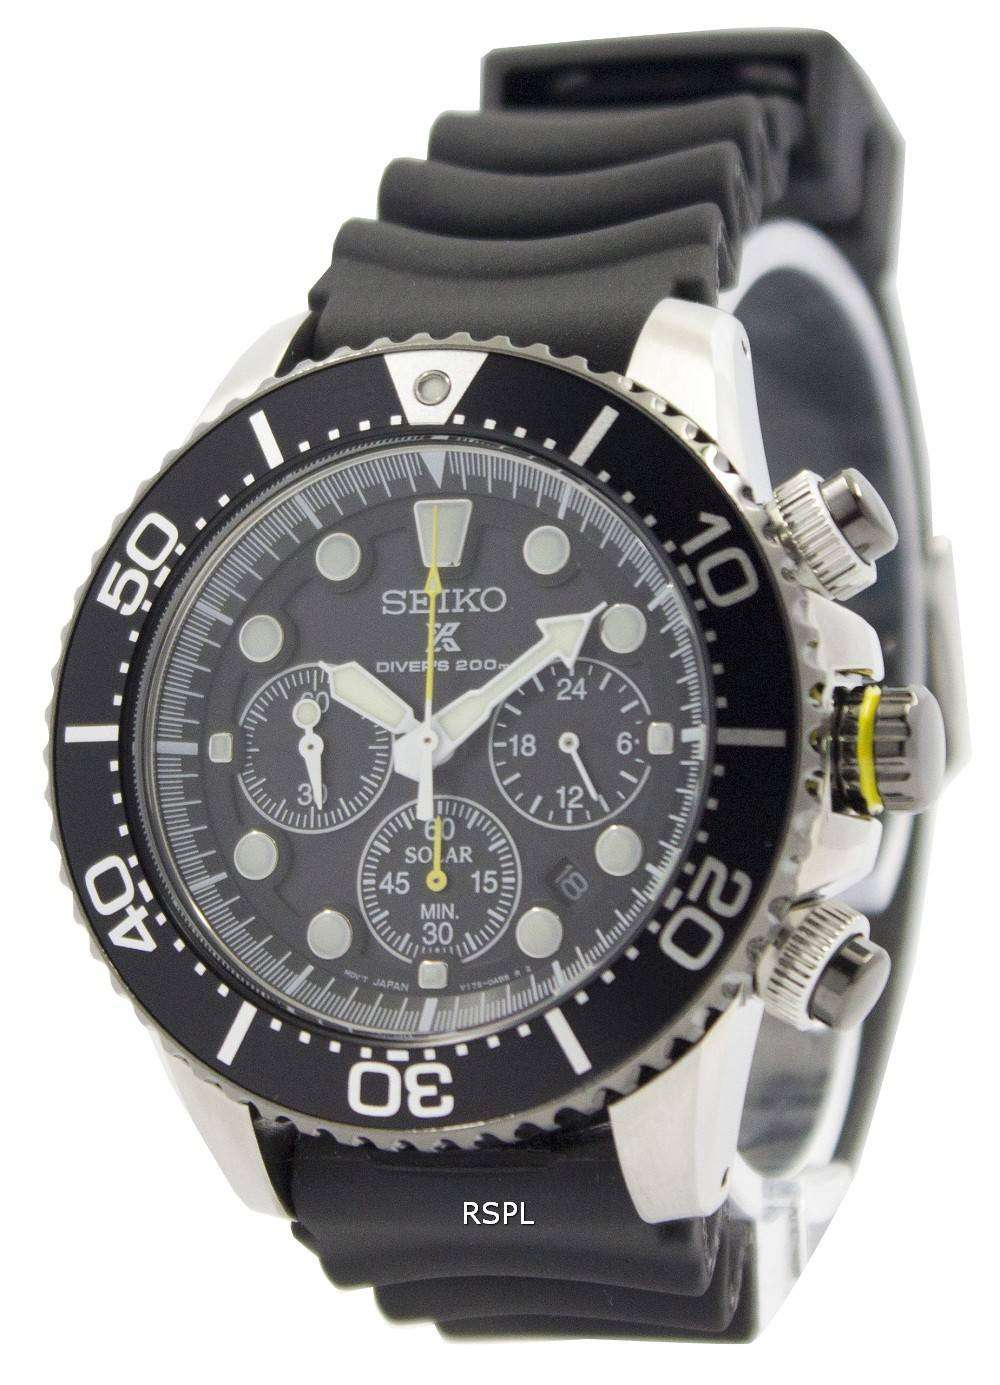 seiko solar chronograph ssc021p1 mens watch citywatches. Black Bedroom Furniture Sets. Home Design Ideas